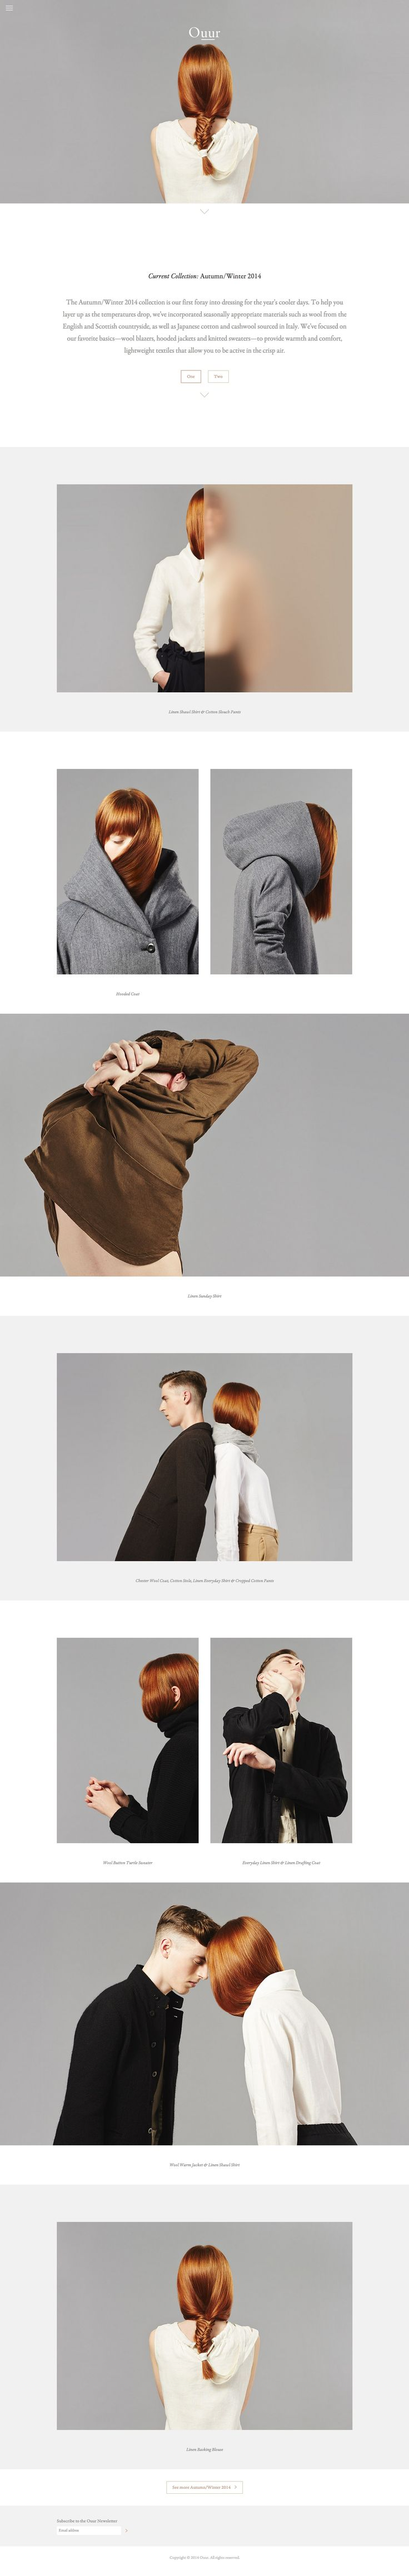 Ouur Collection Website